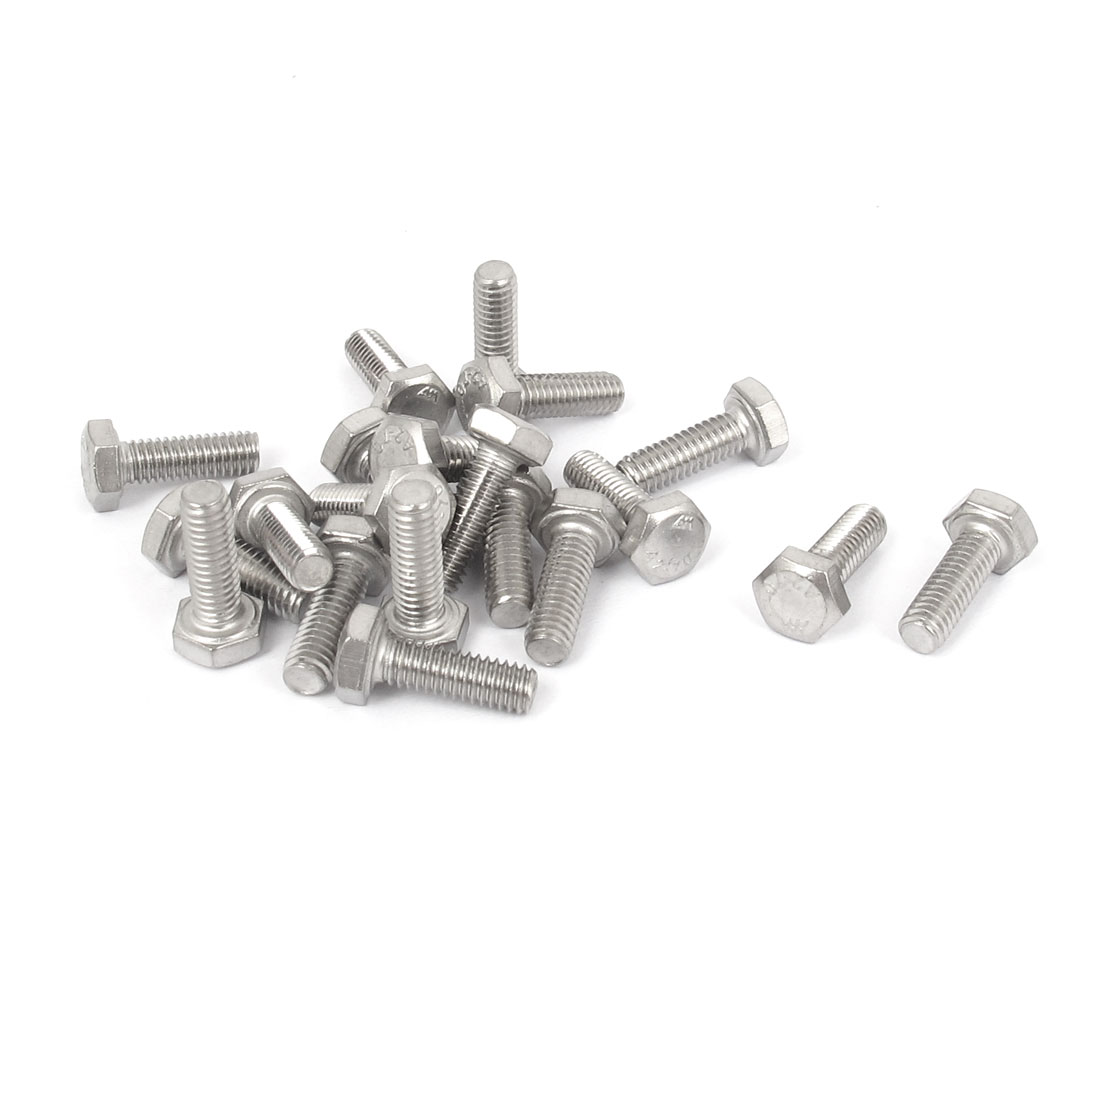 M4x12mm Thread 304 Stainless Steel Hex Hexagon Head Screw Bolt 20pcs